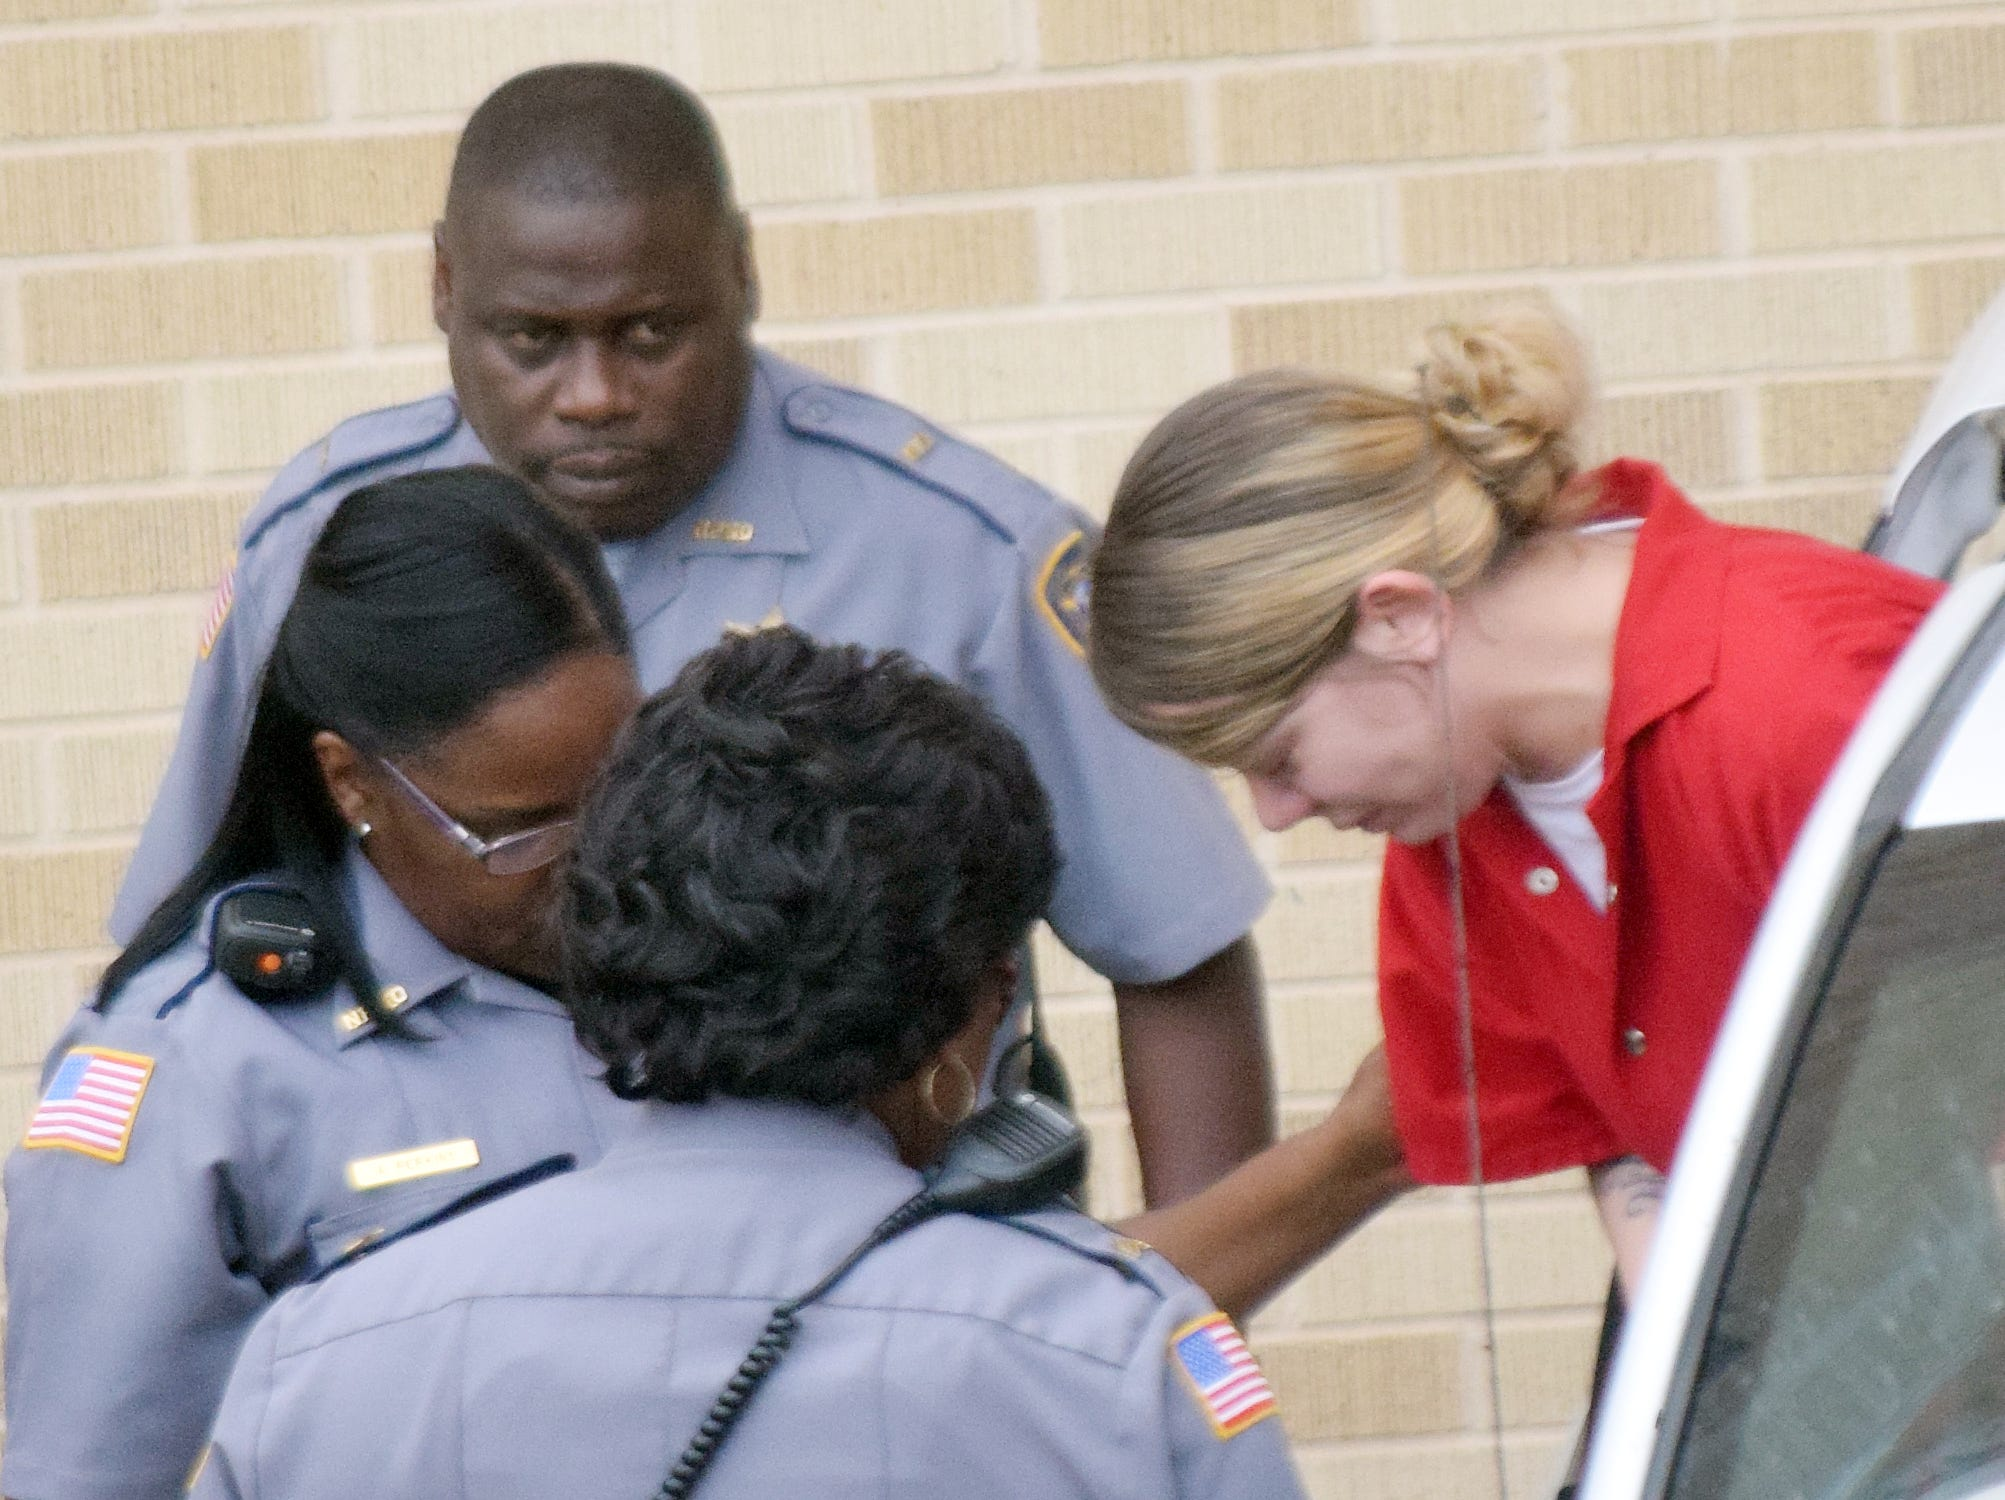 Hanna Nicole Barker (far right), the mother of a baby who died after being found in a fire, is seeking to have bond set, according to court documents. Barker, 22, was arrested by the Natchitoches Police Department on July 25 on charges of being a principal to first-degree murder and criminal conspiracy. She was brought to a Natchitoches Parish courtroom Friday morning for multiple motions, including one to set bond. The motions were filed recently by Shreveport attorney J. Dhu Thompson, a former prosecutor now in private practice.